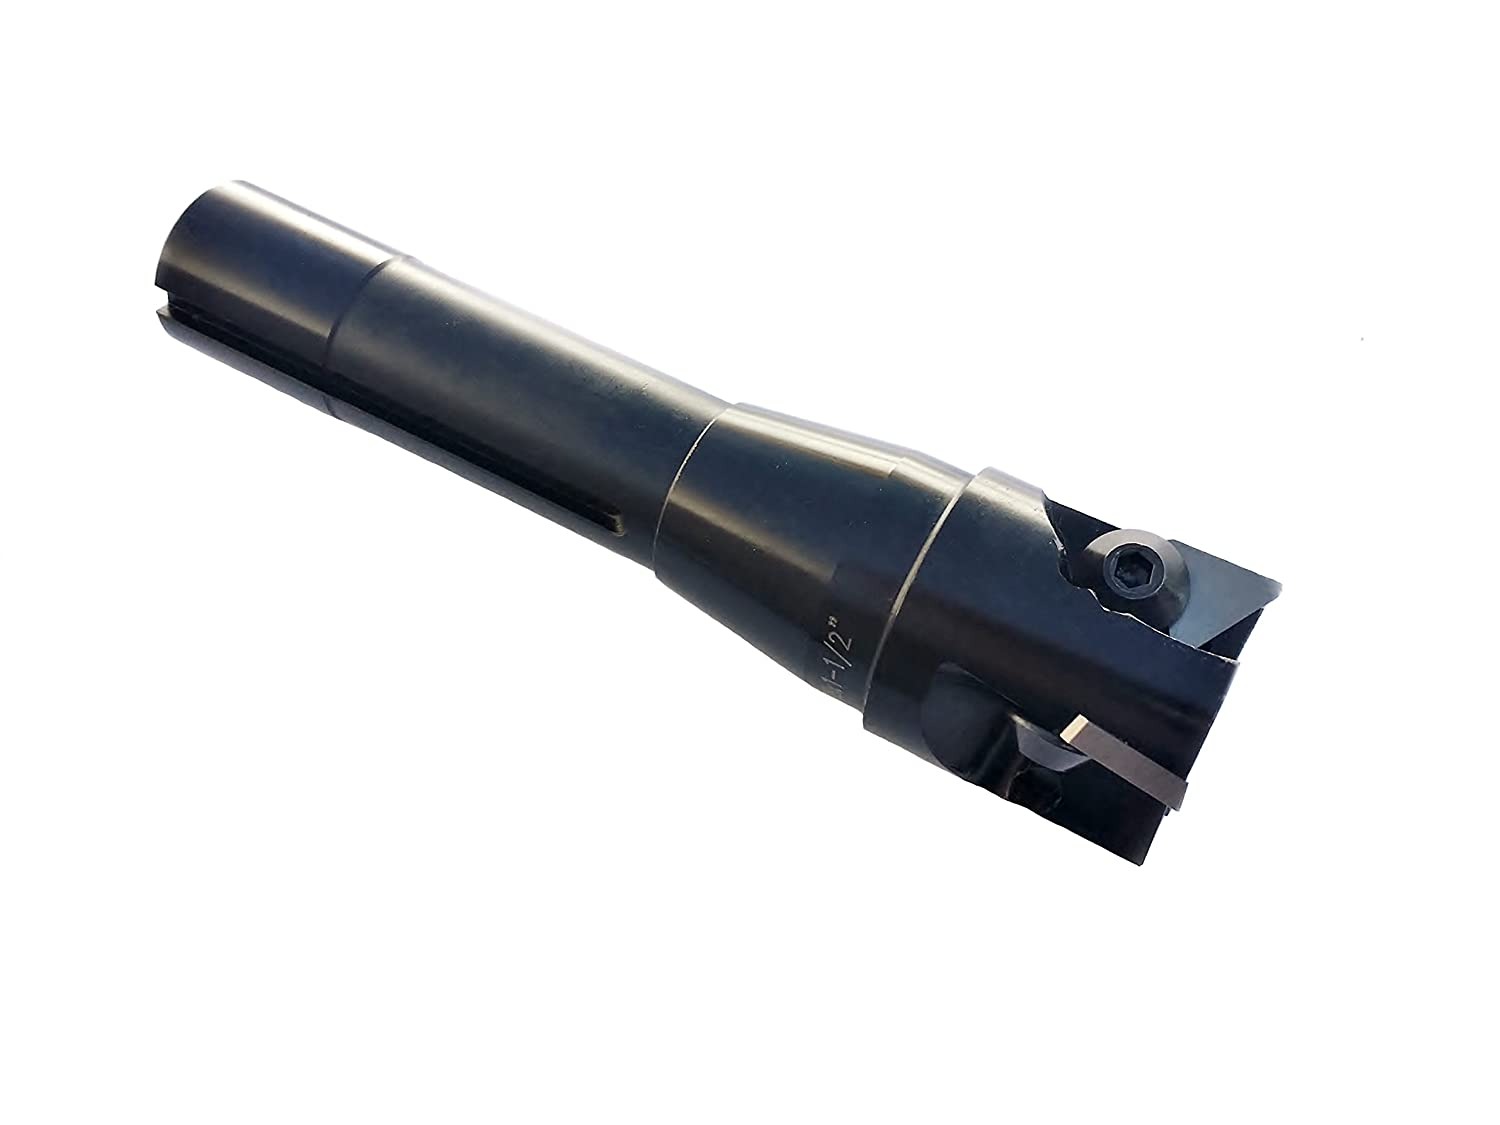 HHIP 1006-0011 1-1//2 Inch R8 Indexable End Mill